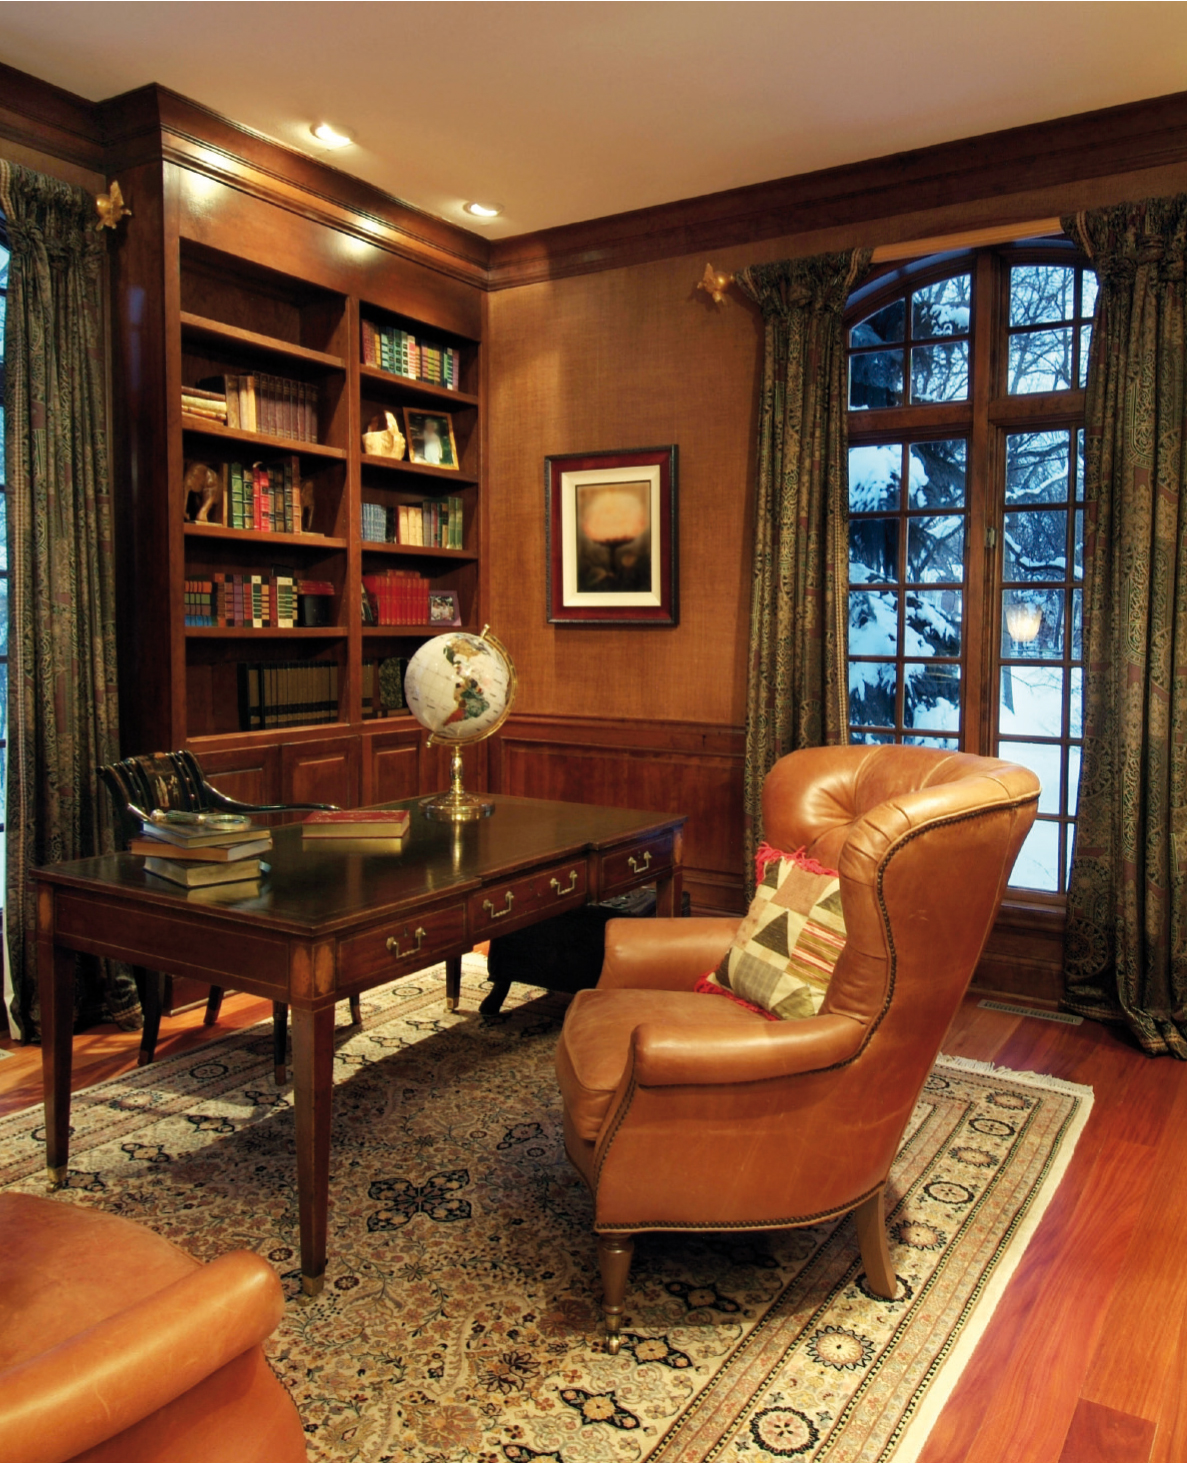 The Gentleman's Room: Creating A Masculine Aesthetic